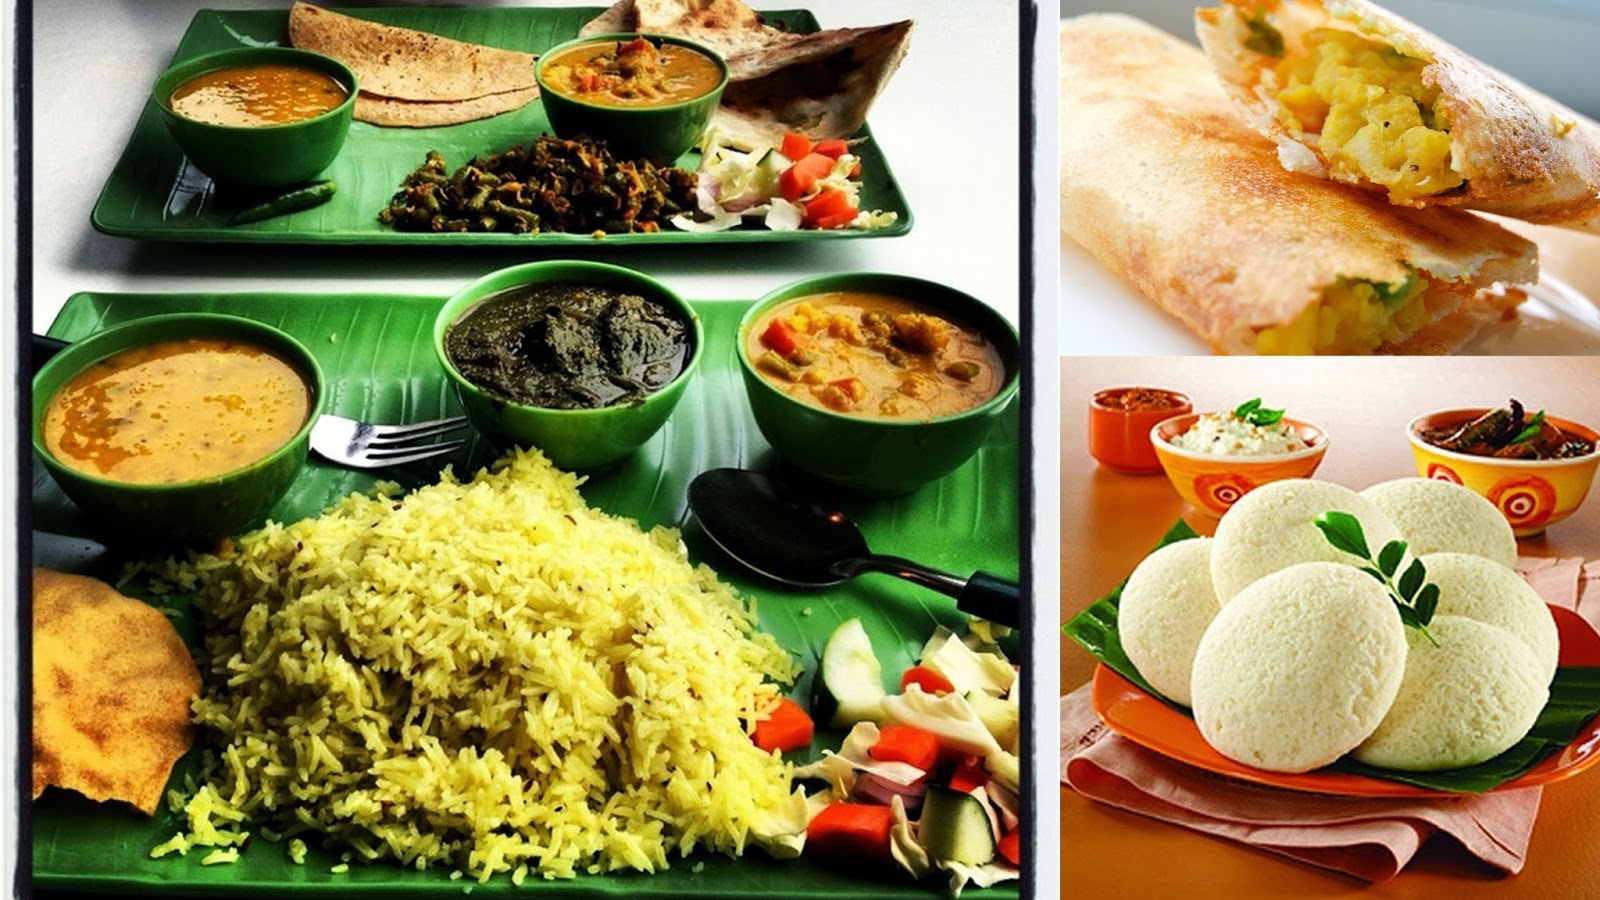 Complete food plate and South Indian dishes Masala Dosa and idli